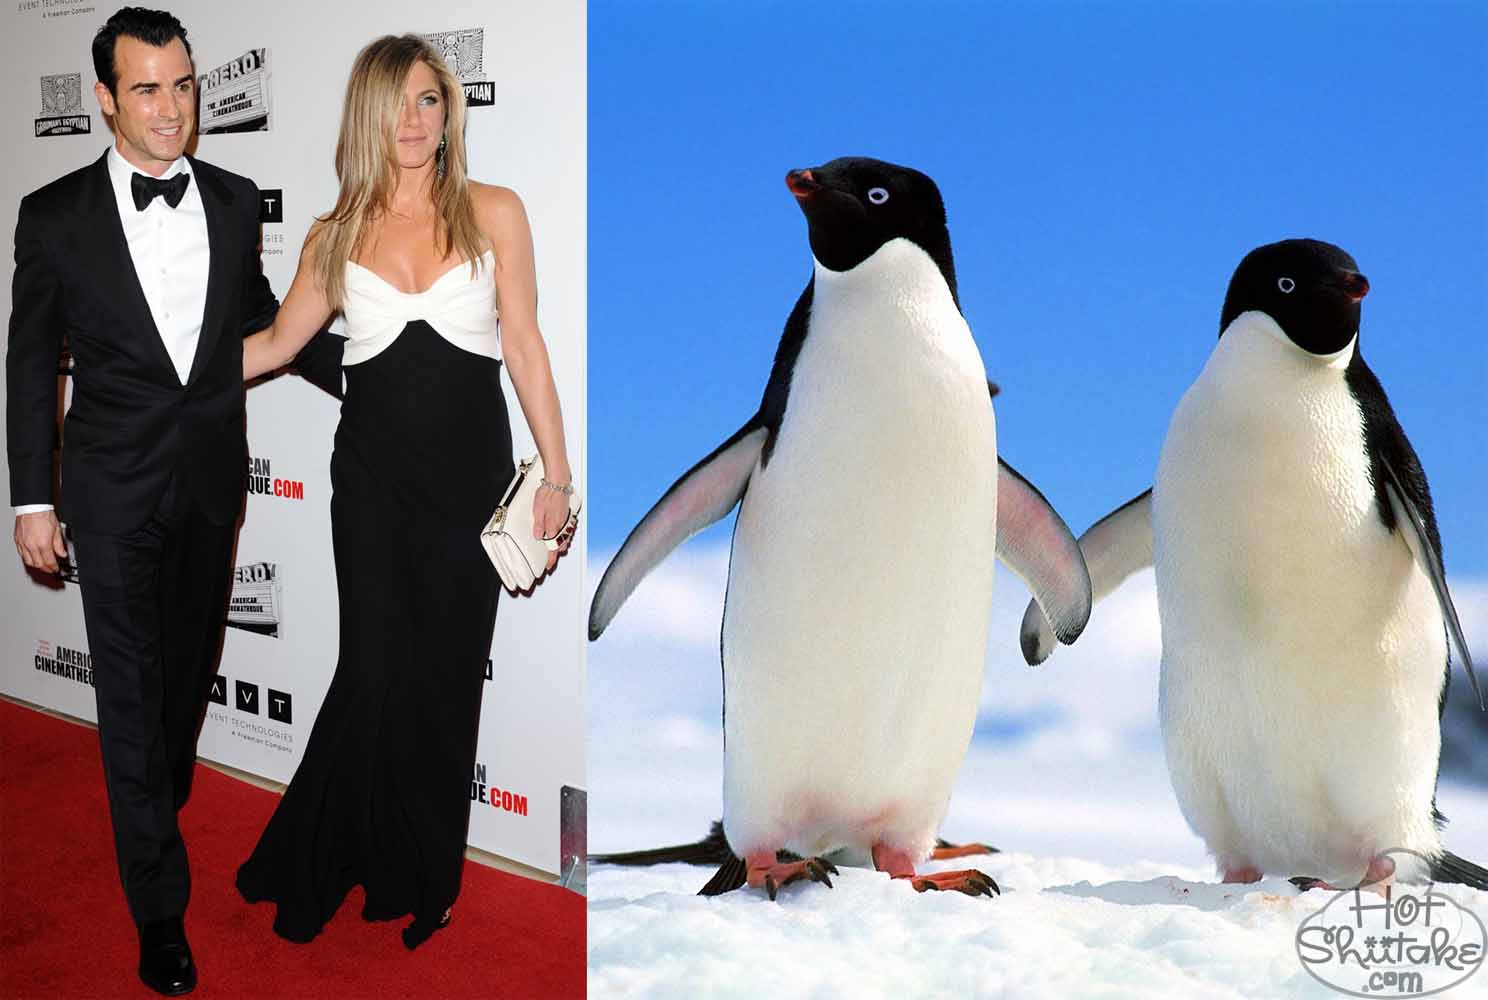 http://4.bp.blogspot.com/-TKUsJN3w1Ac/UKhRqMh4HXI/AAAAAAAABYI/gV6KHYJrEUU/s1600/justin-theroux-jennifer-aniston-penguin-couple-american-cinematheque-awards-2012.jpg